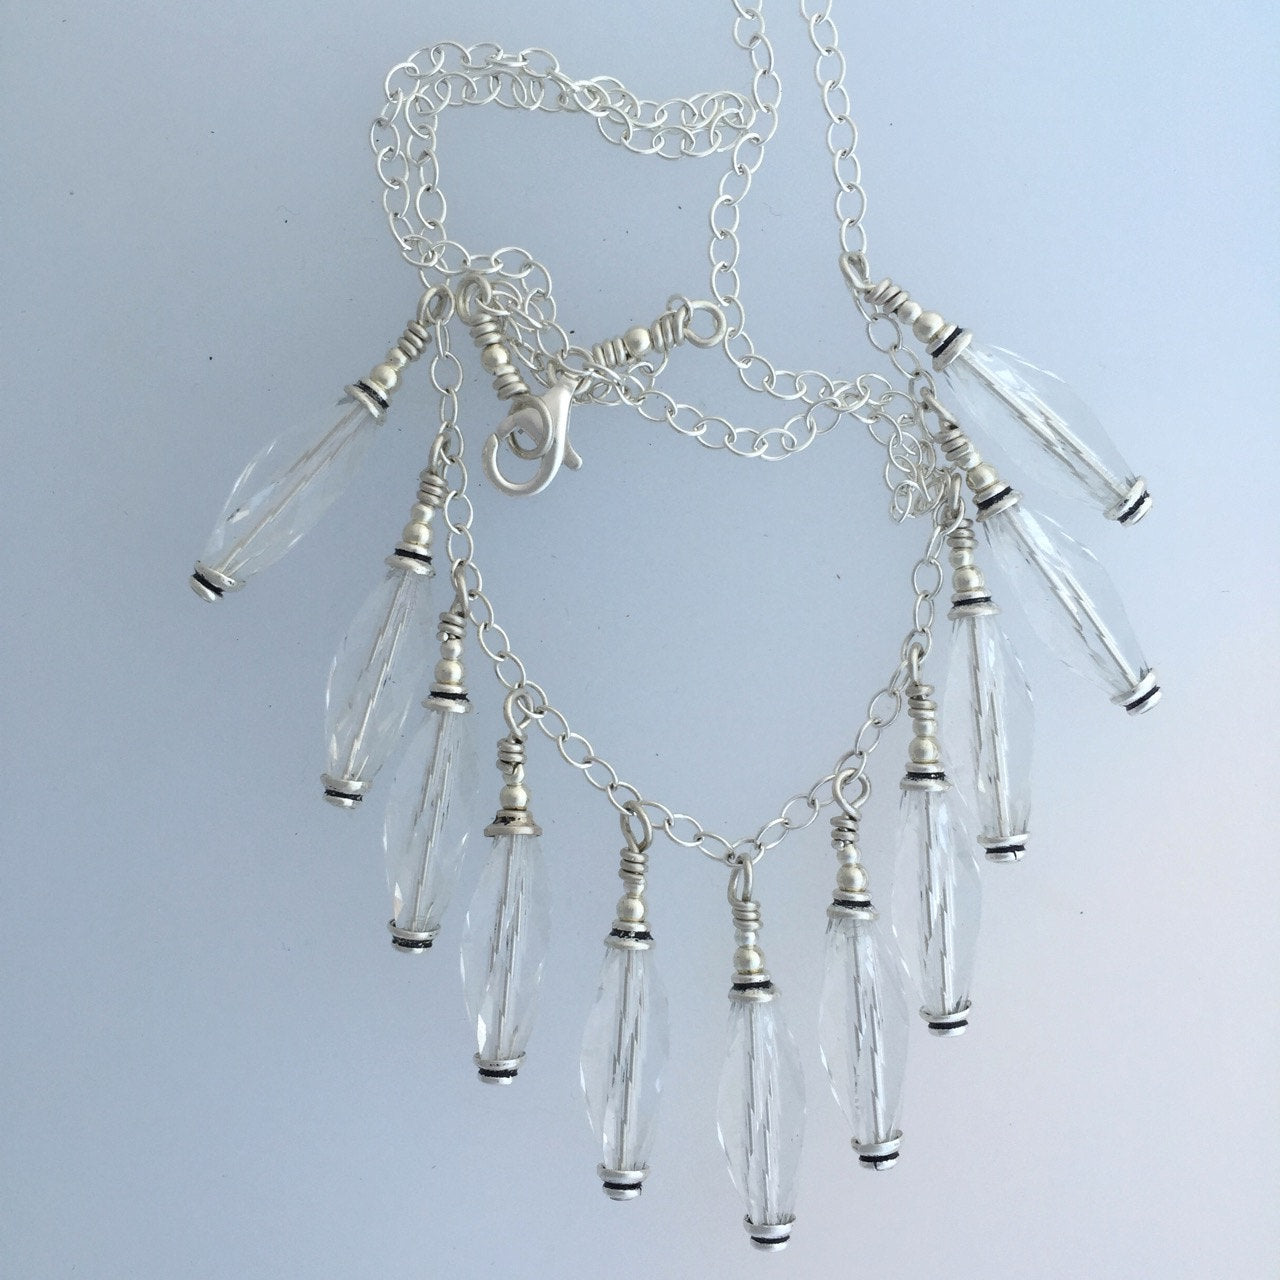 Rare Clear Swarovsky Crystal Beads in Necklace  by Kate Drew-Wilkinson